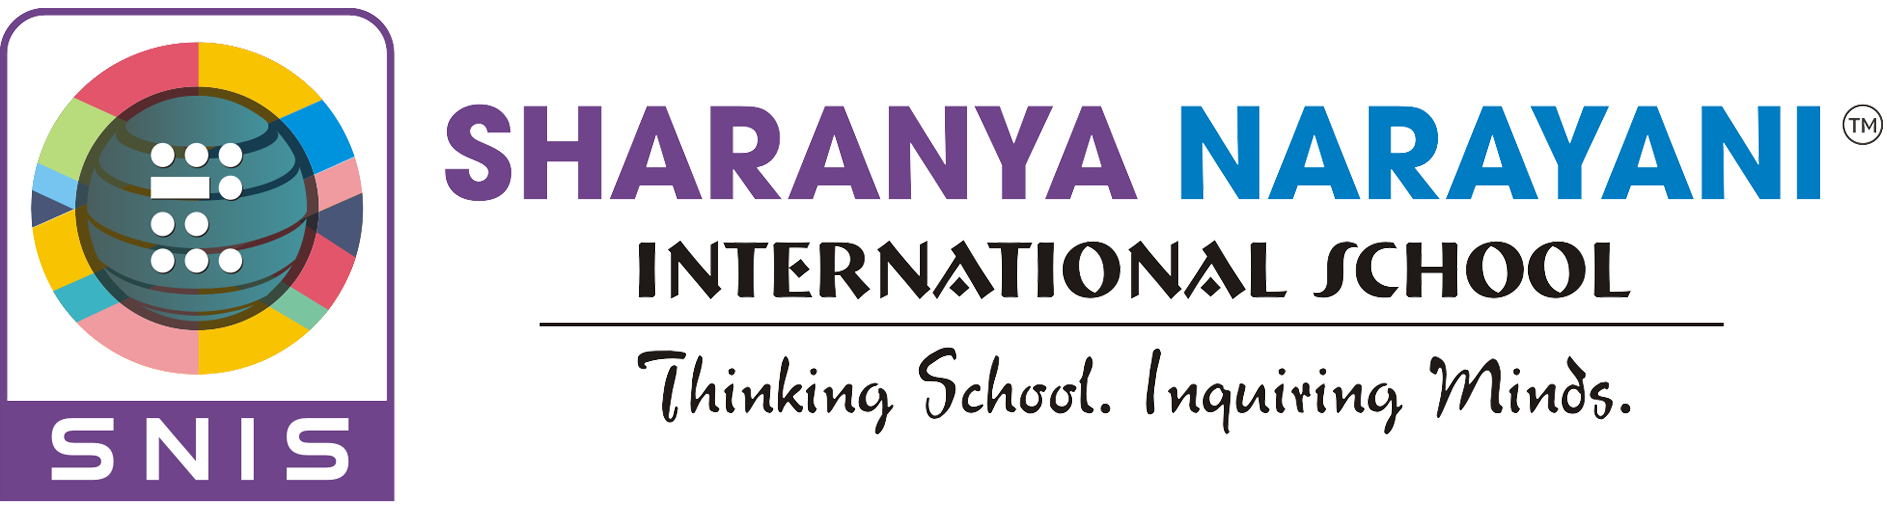 Sharanya Narayani International School - Bangalore Image